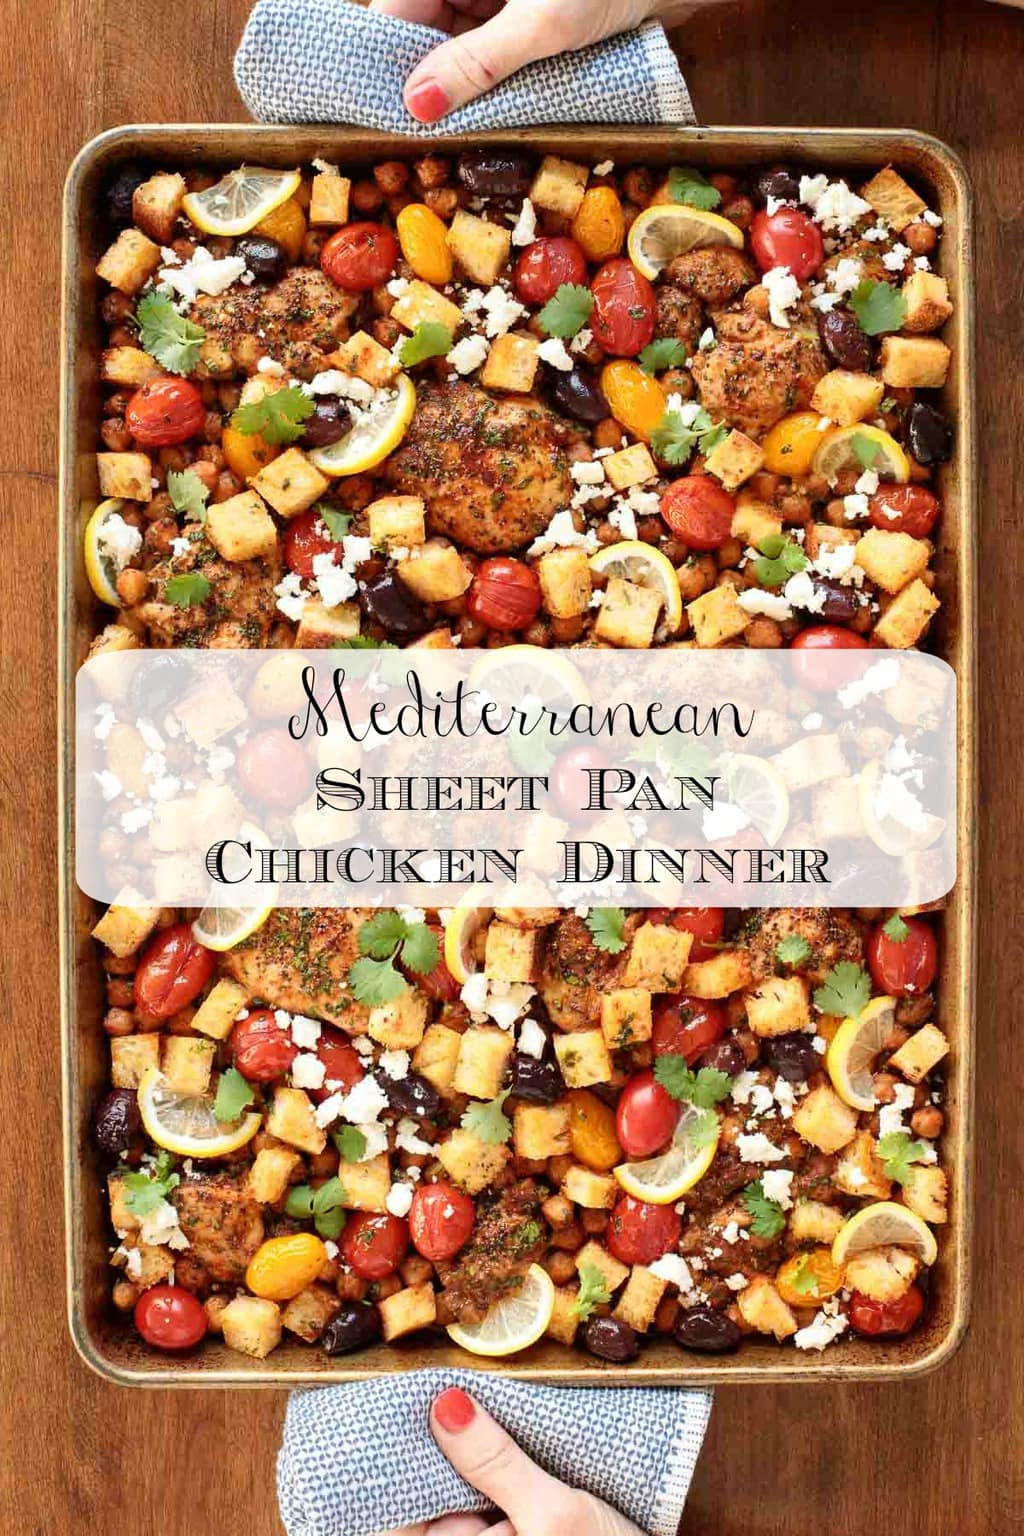 Mediterranean Sheet Pan Chicken Dinner